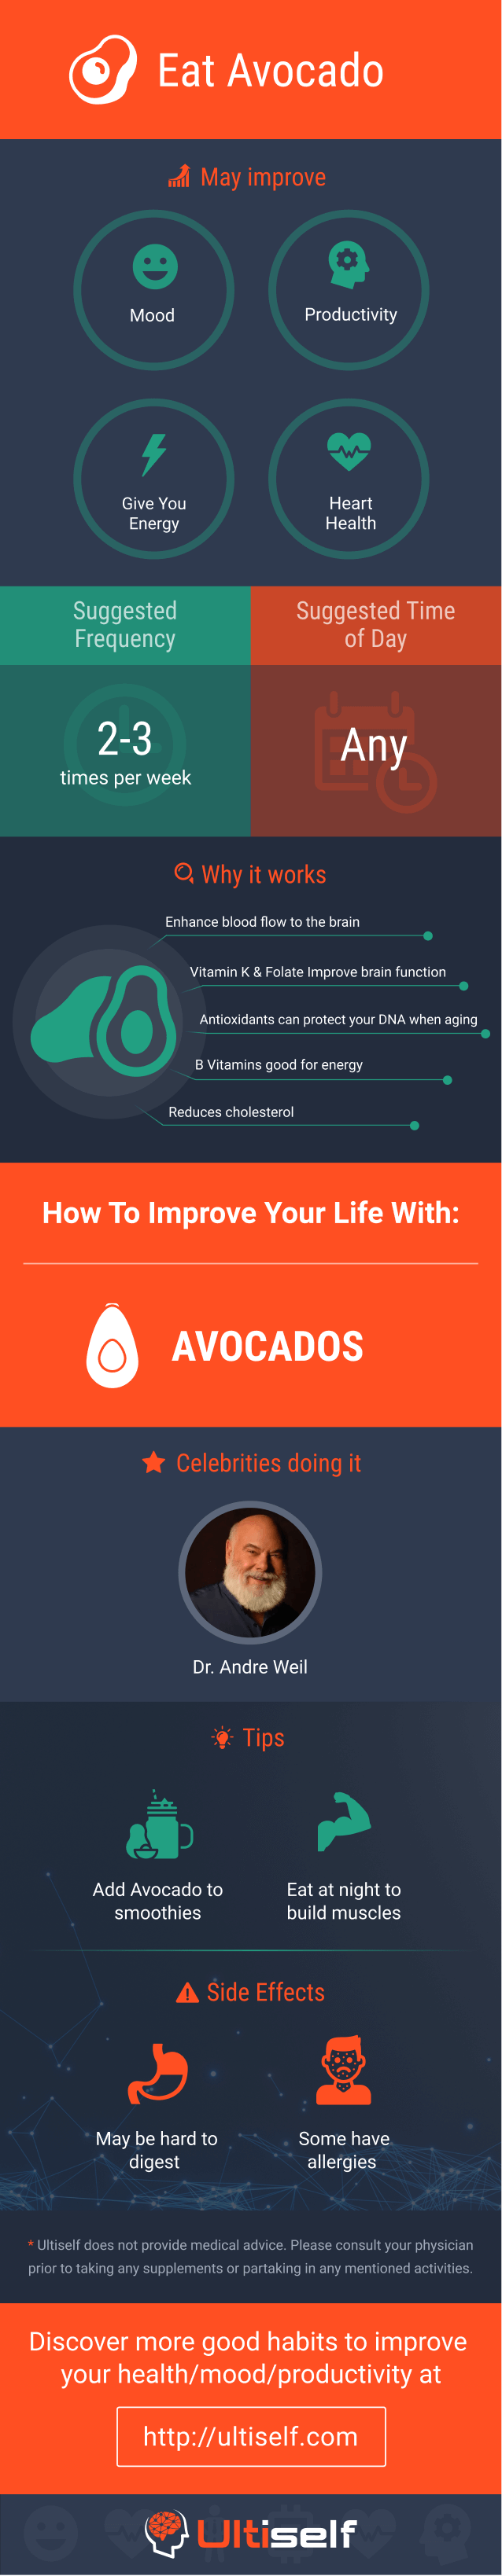 Eat Avocado infographic